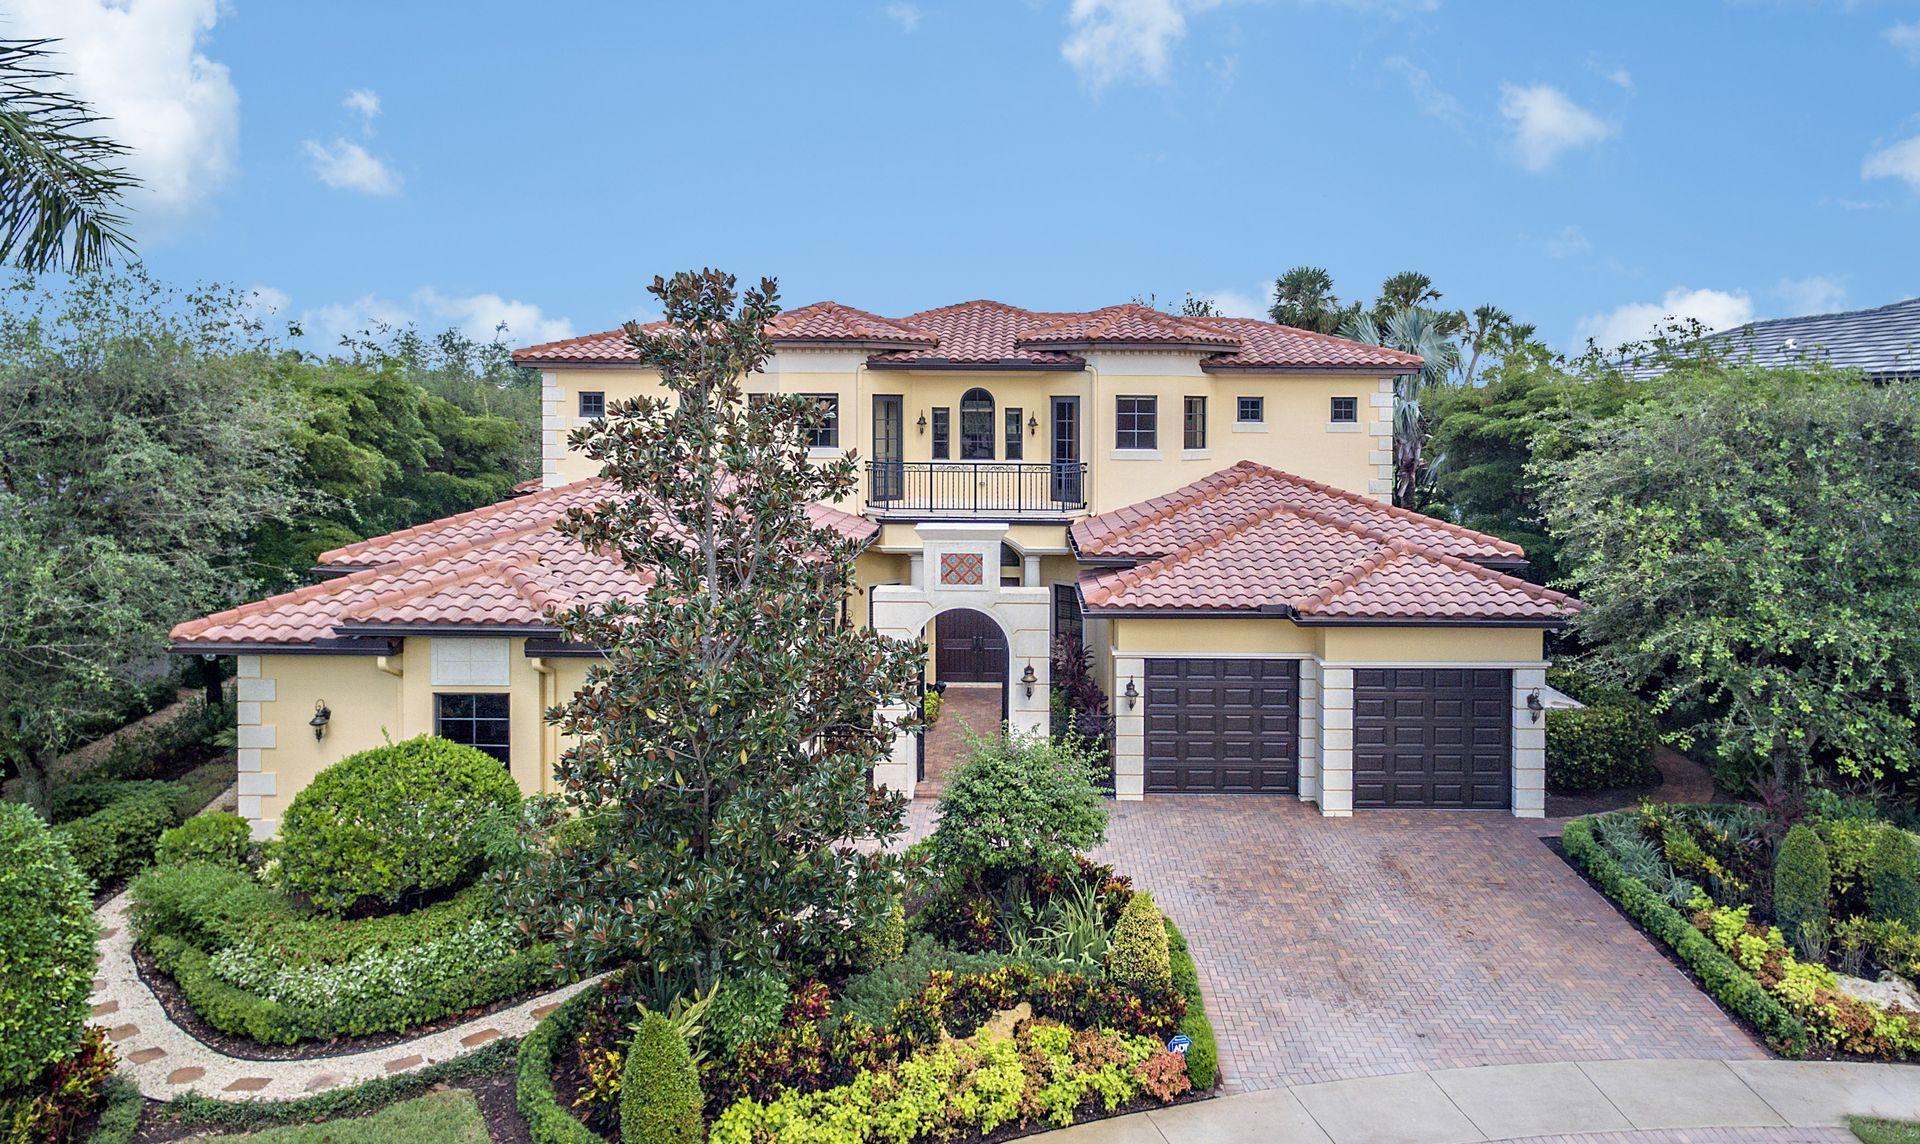 Pristine Mediterranean 2-story home with 4 bedrooms, 5 full & 1 half bathrooms, plus library & loft and 3 car garage.1/3 acre lake and golf front lot on a street of custom estate homes which can exceed $2.8 Million. Entire estate boasts impact resistant windows with Hunter Douglas window treatments throughout and a Quietsource generator. Grand double door entry to Jerusalem marble inlaid foyer and dramatic marble & wood staircase to the 2nd floor with 2 grand guest suites with ensuite bathrooms. Chef's kitchen includes oversized double Subzero refrigerators with 4 pullout freezer drawers; 6-burner Wolf range with built-in griddle; double gas ovens; Miele dishwasher; Wolf built-in microwave; oversized island can accommodate a buffet, breakfast dining & more. Club Equity purchase is required Pristine Mediterranean 2-story home with 4 bedrooms, 5 full & 1 half bathrooms, plus library & loft area and 3 car garage.1/3 acre lake and golf front lot on a street of custom estate homes which can exceed $2.8Million. Entire estate boasts impact resistant windows with Hunter Douglas window treatments throughout and a Quietsource generator. Grand double door entry to Jerusalem marble inlaid foyer and dramatic marble & wood staircase to the 2nd floor with 2 grand guest suites with ensuite bathrooms. Chef's kitchen includes oversized double Subzero refrigerators with 4 pullout freezer drawers; 6-burner Wolf range with griddle; double gas ovens; Miele dishwasher; Wolf built-in microwave; oversized island can accommodate a buffet, breakfast dining and more. Sliding double doors off the breakfast/family area lead out to unobstructed long lake and golf views. The covered patio boasts stained pecky cypress ceiling and double fans. The owner's study includes wood flooring, matching decorative ceiling and double door entry, as well as a separate impact glass entry from the courtyard. Wet bar area has under-counter Subzero refrigerator, wine storage & porcelain sink. Professional well-water integrated irrigation system for the upgraded landscaping which includes side yards suitable to accommodate a putting green, badminton, bocci ball, etc. Ower's architect also has preliminary drawings to provide for up to a 2-story 1,200 SF addition on the property.